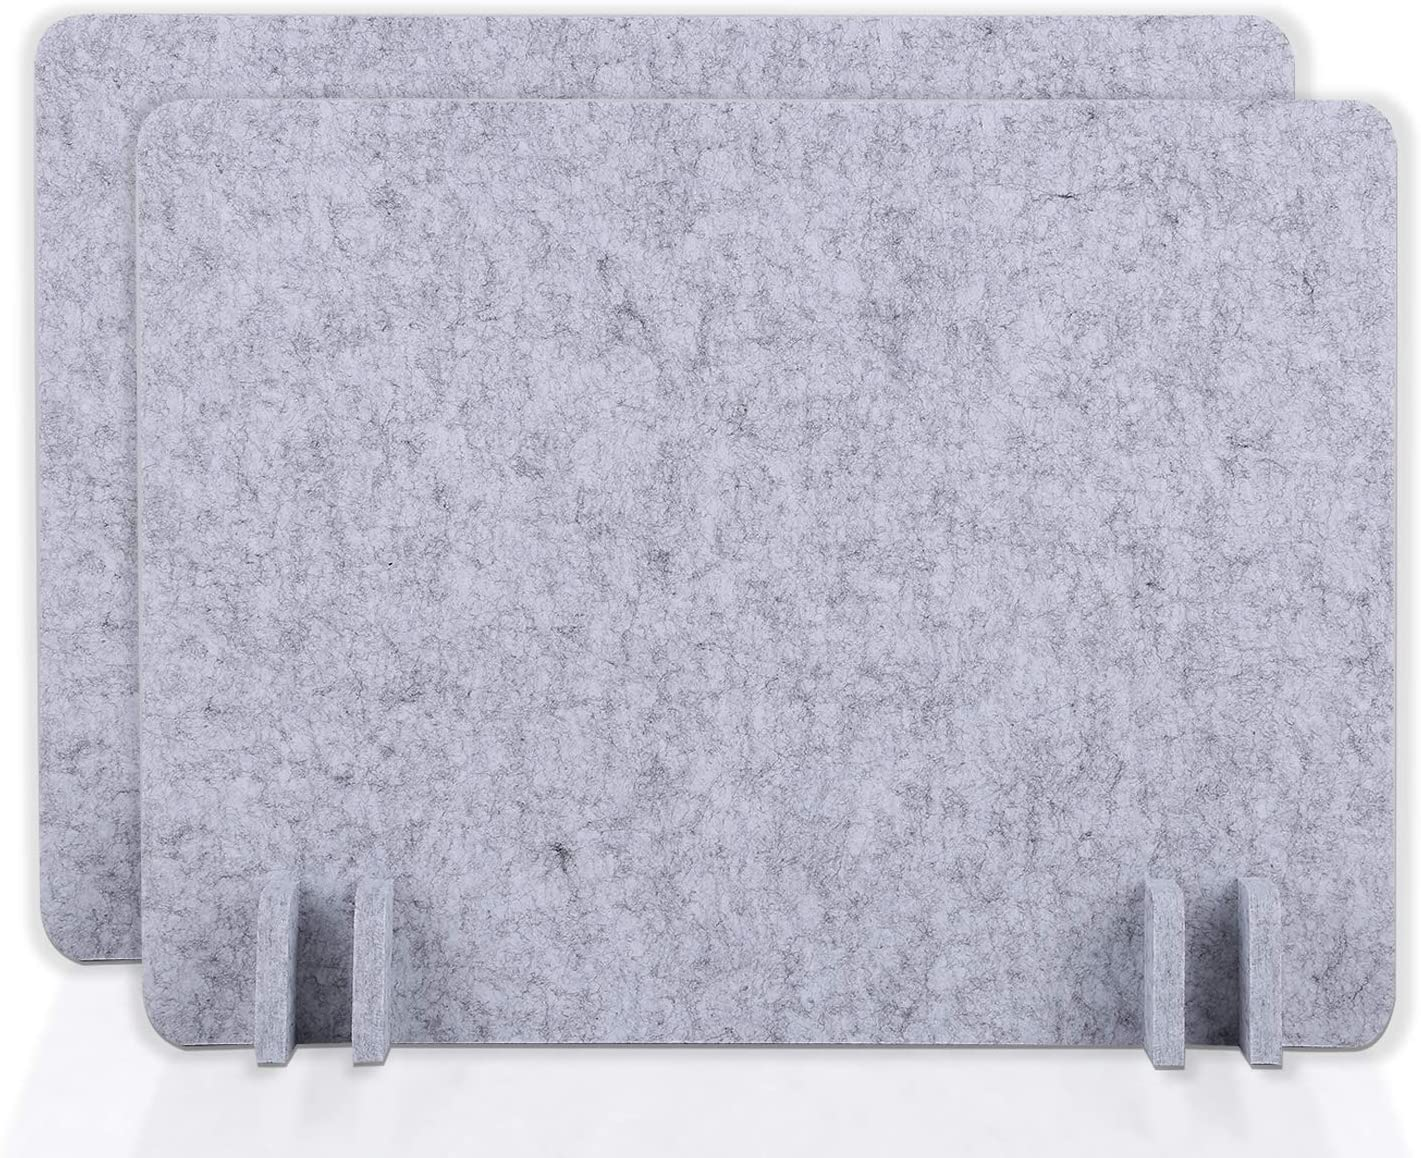 BUBOS Acoustic Desk Divider,Lightweight Desk Mounted Privacy Panel,Sound Absorbing Cubicle Desk Dividers, Acoustic Partitions,Can Reduce Noise and Visual Distractions(21 x 16inch,2Pack) (Silver Gray)